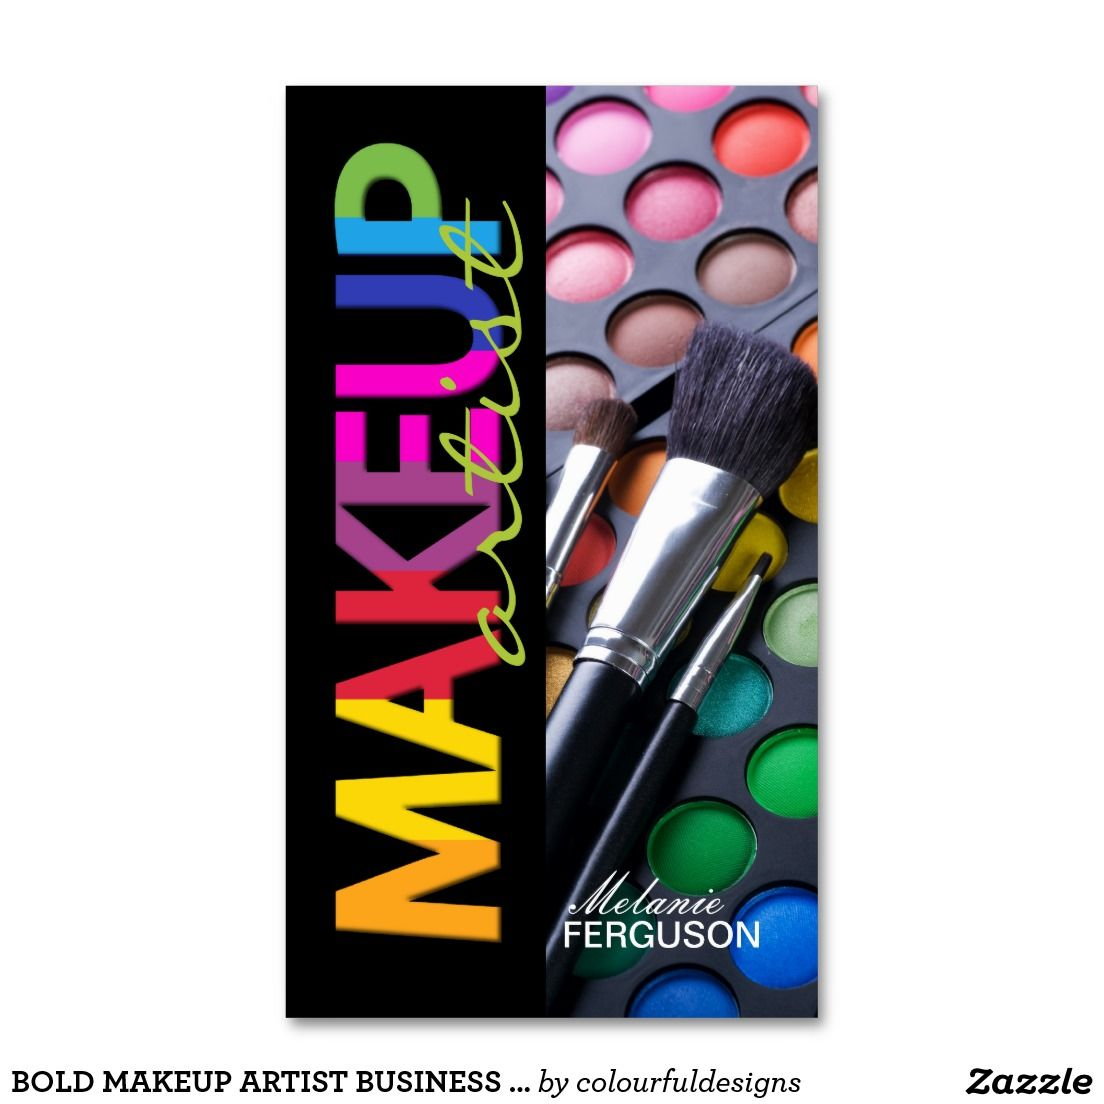 Bold makeup artist business card ideias pinterest ateli e bold makeup artist business card reheart Image collections